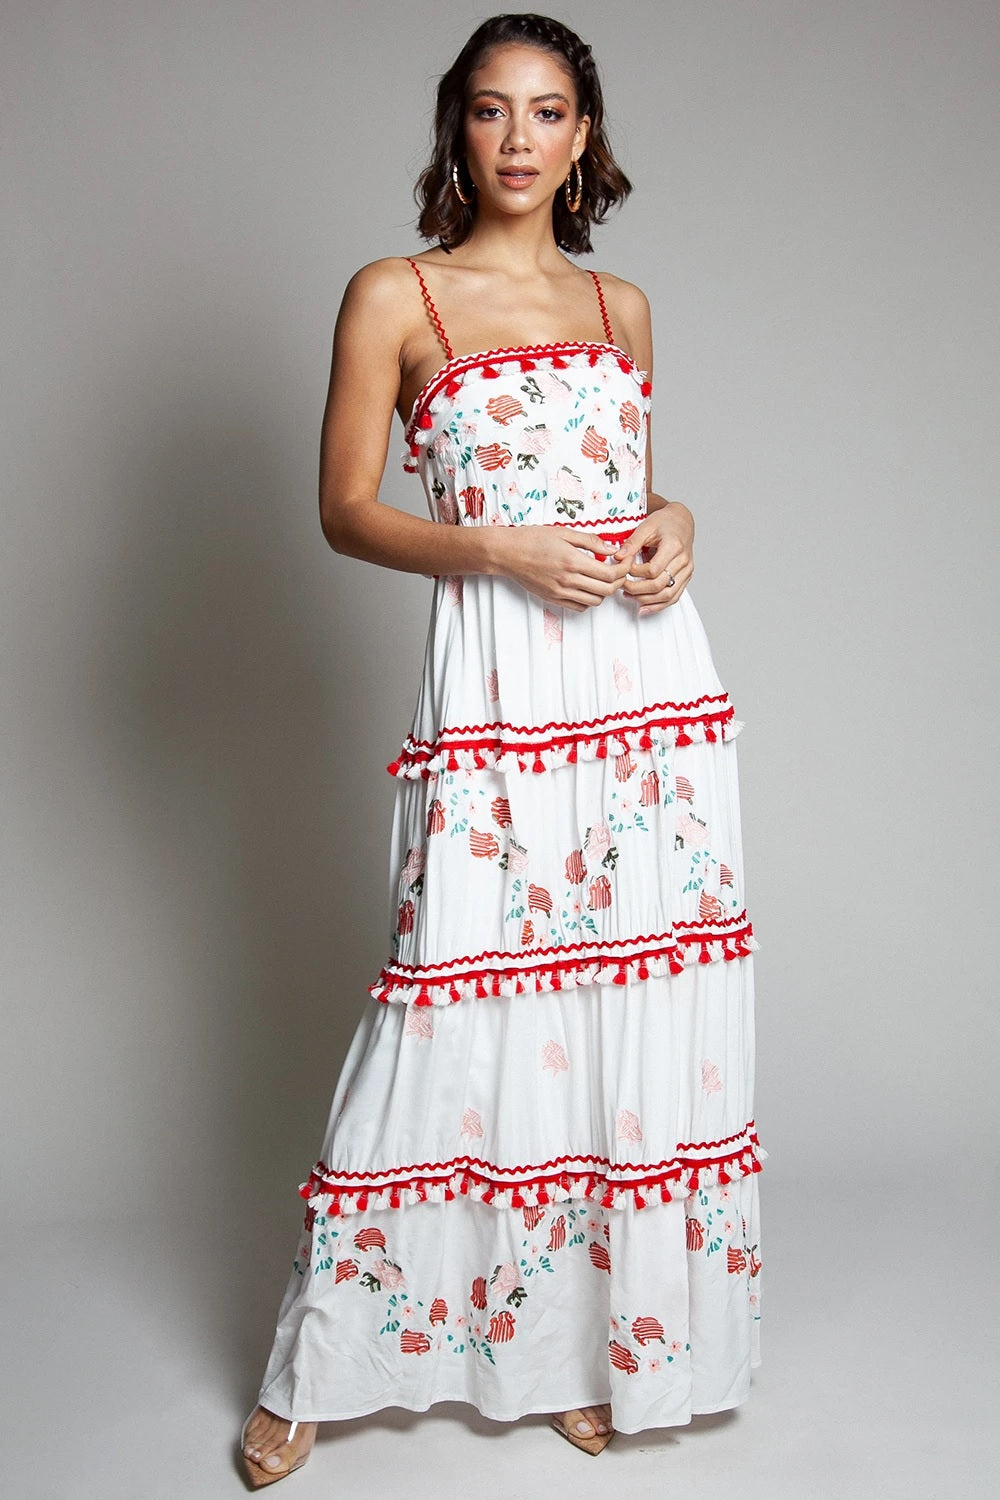 Floral Embroidered Sleeveless Floral Print Maxi Dress - STEVEN WICK